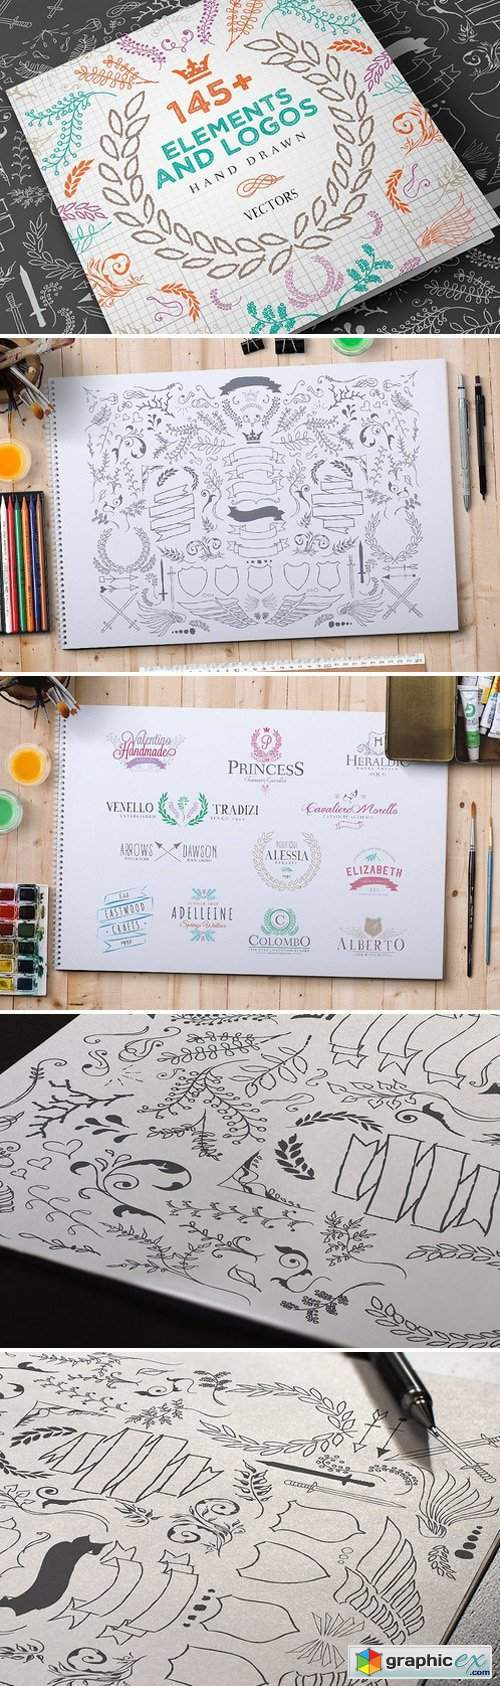 Hand Drawn Elements and Logos